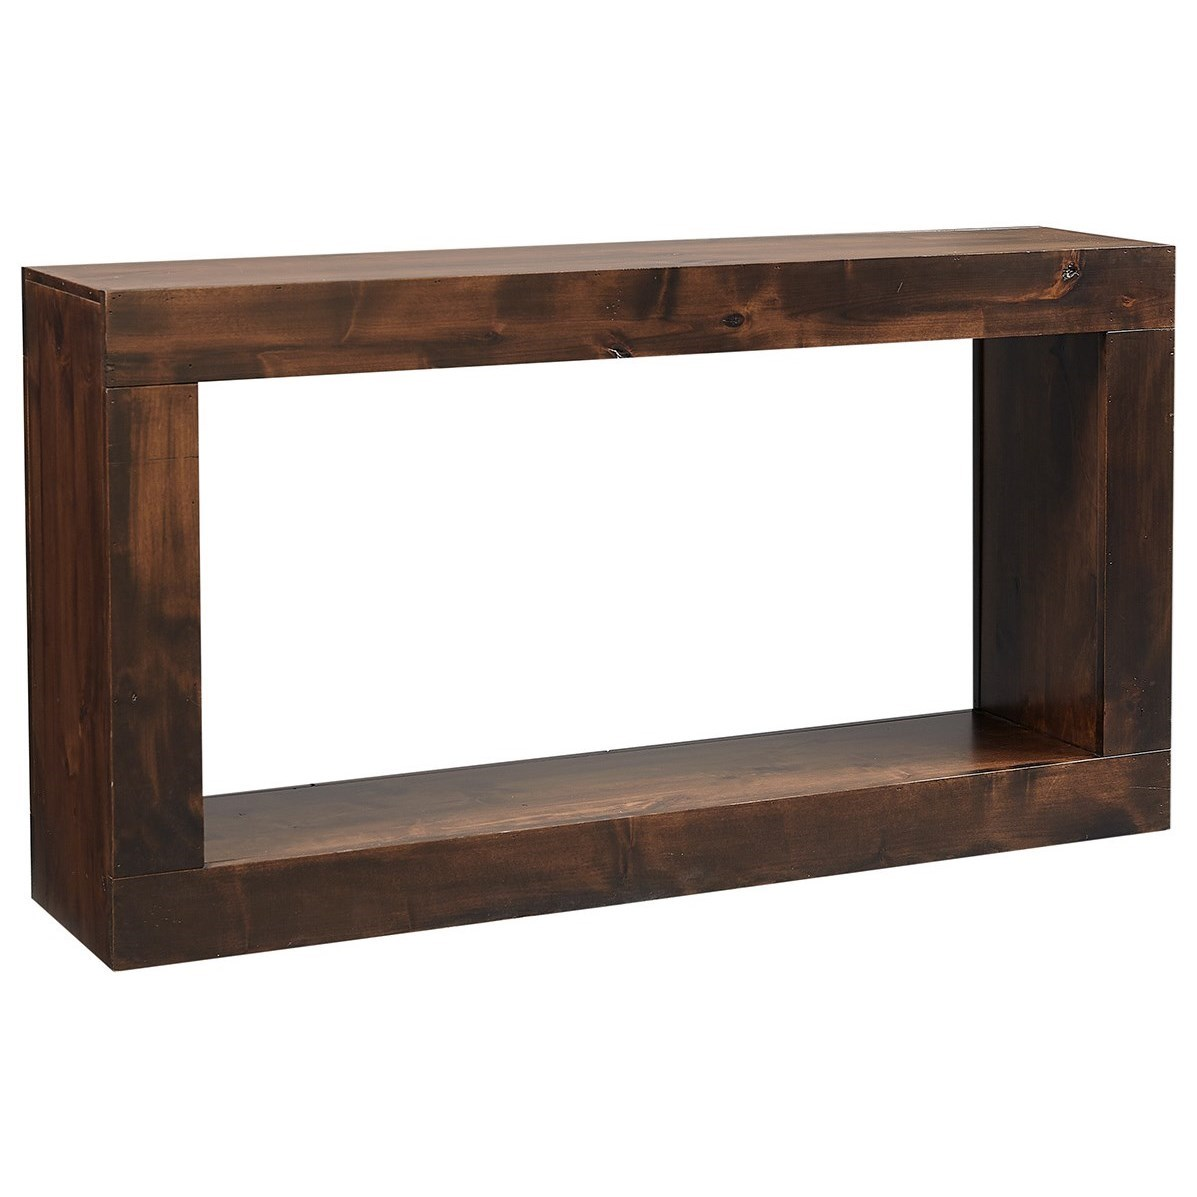 Nova Alder Console Table by Birch Home at Sprintz Furniture